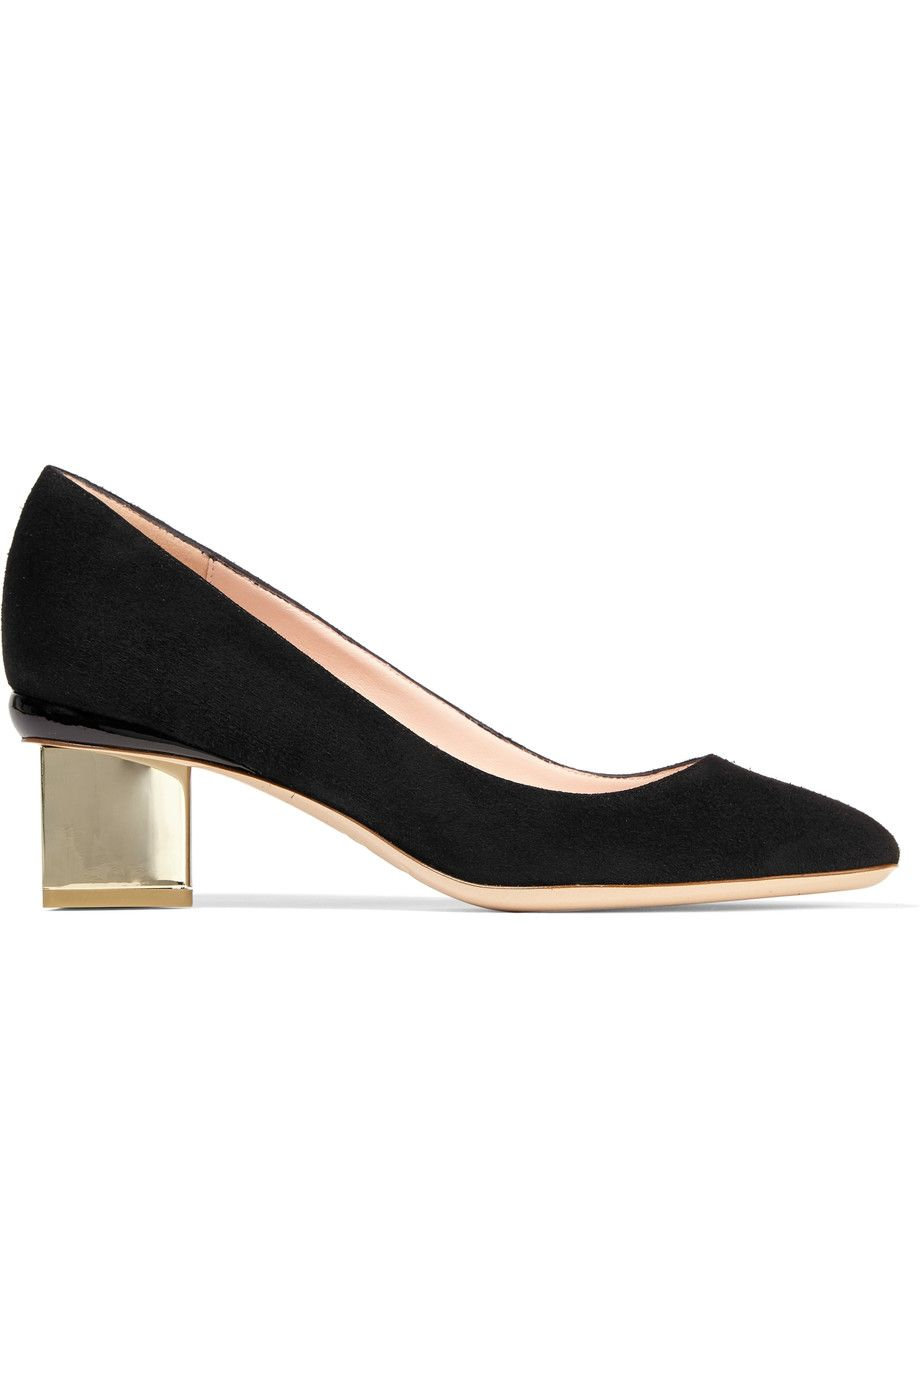 online store cheap very cheap Nicholas Kirkwood Metallic Pebbled Leather Pumps clearance free shipping recommend cheap online wiki for sale mzzGmG